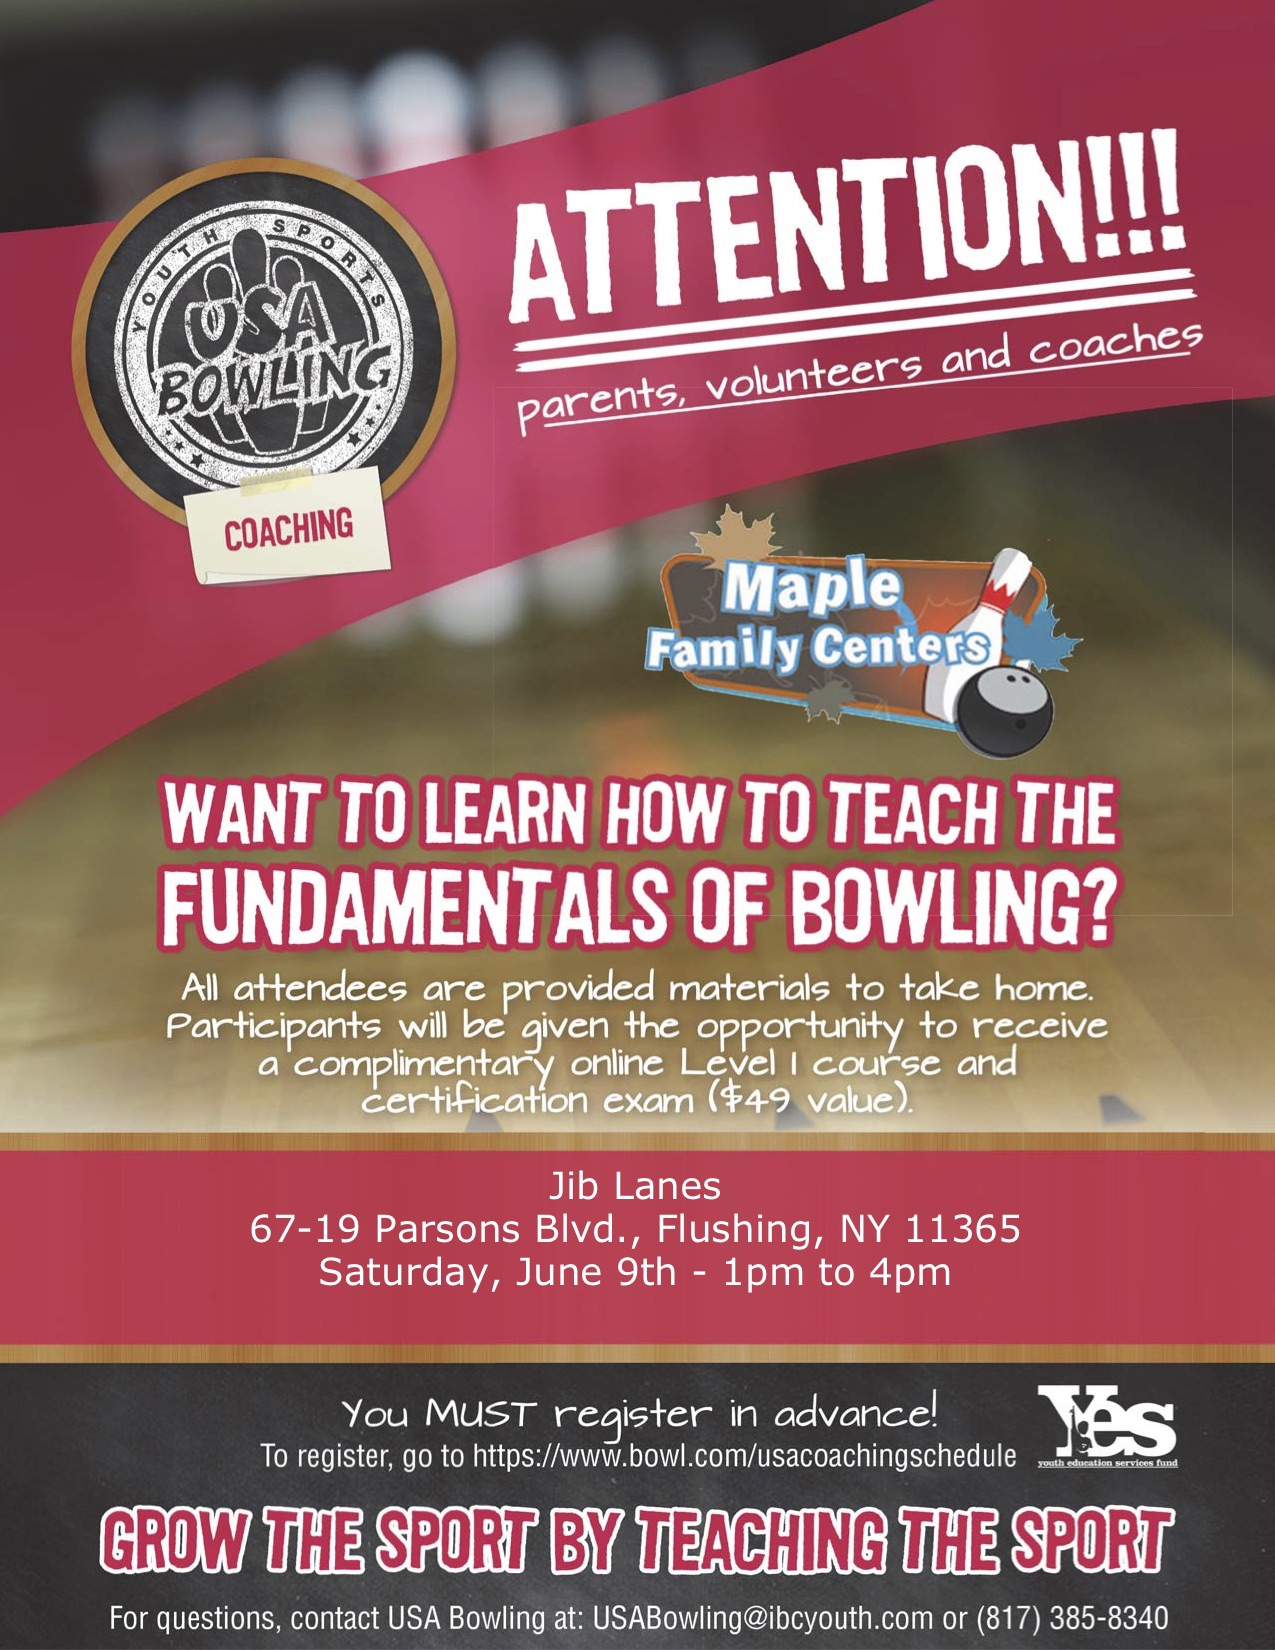 Jib Lanes-2018 USA Bowling Coaching Seminar Flyer